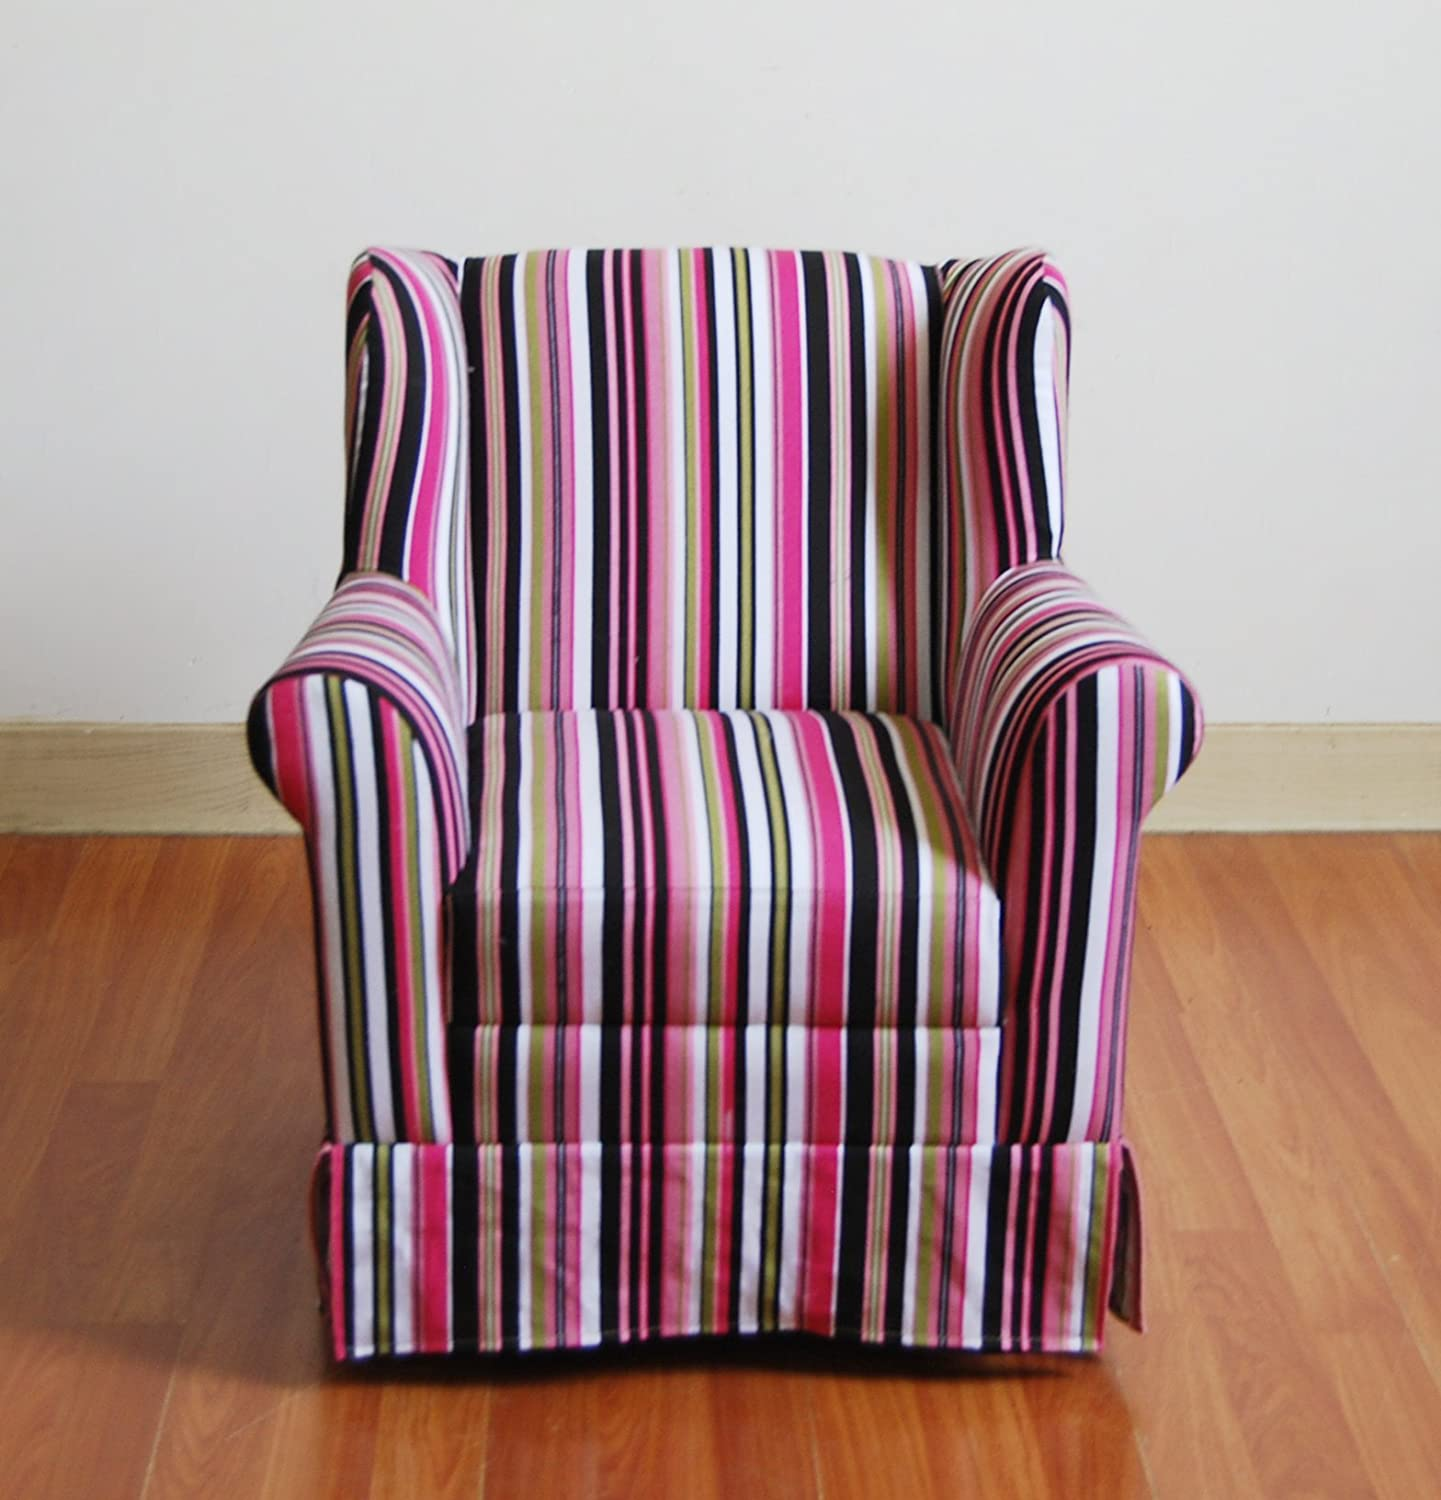 4D Concepts Girls Striped Wingback Chair Inc. K3837-A192